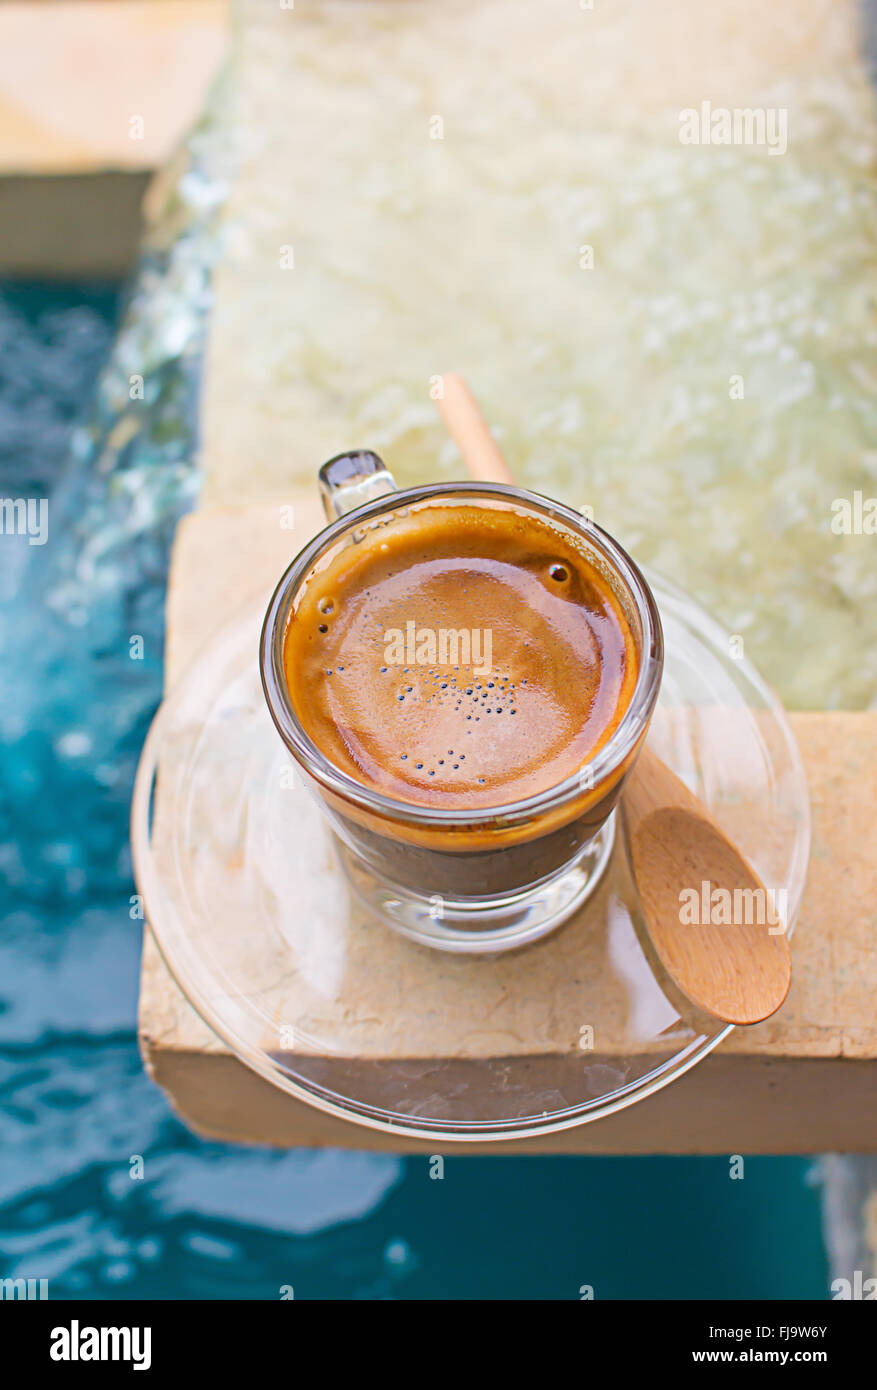 Espresso Coffee in a glass cup. - Stock Image